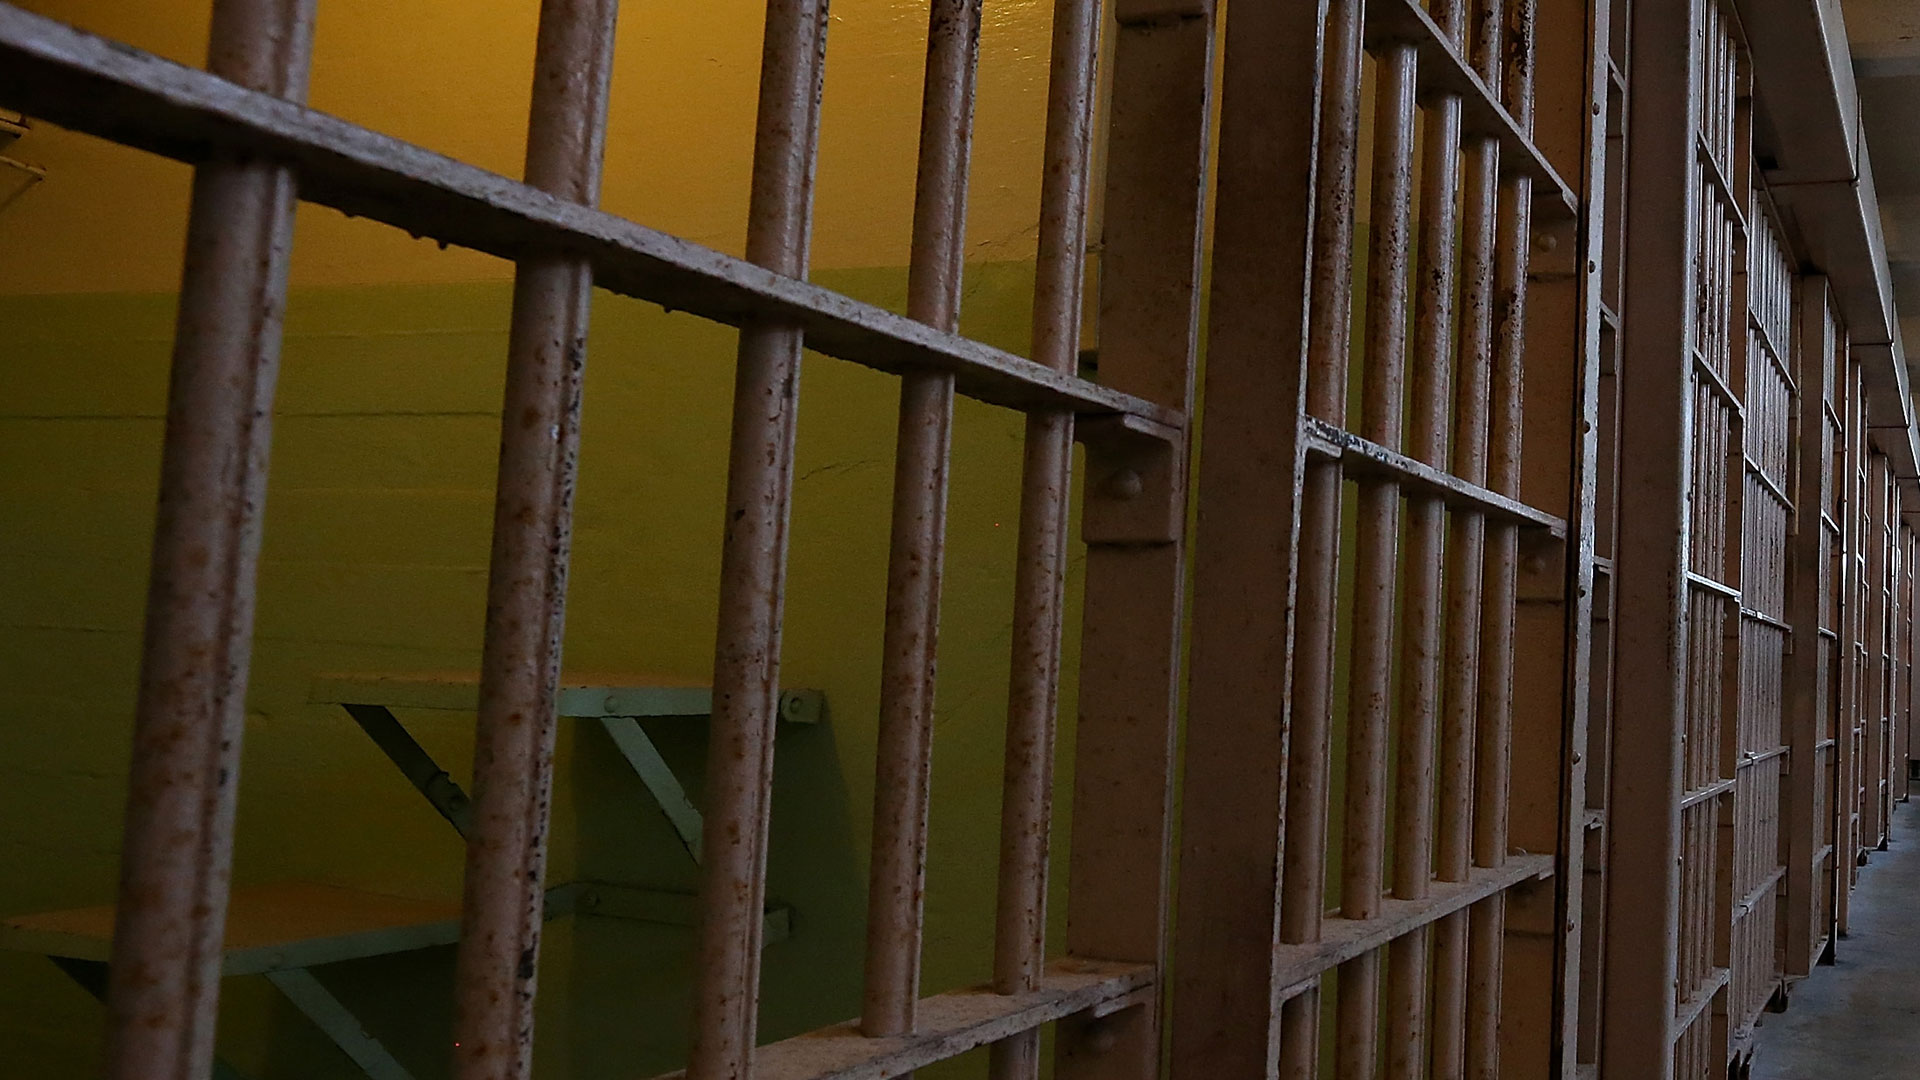 A file photo shows a jail cell. (Justin Sullivan/Getty Images)